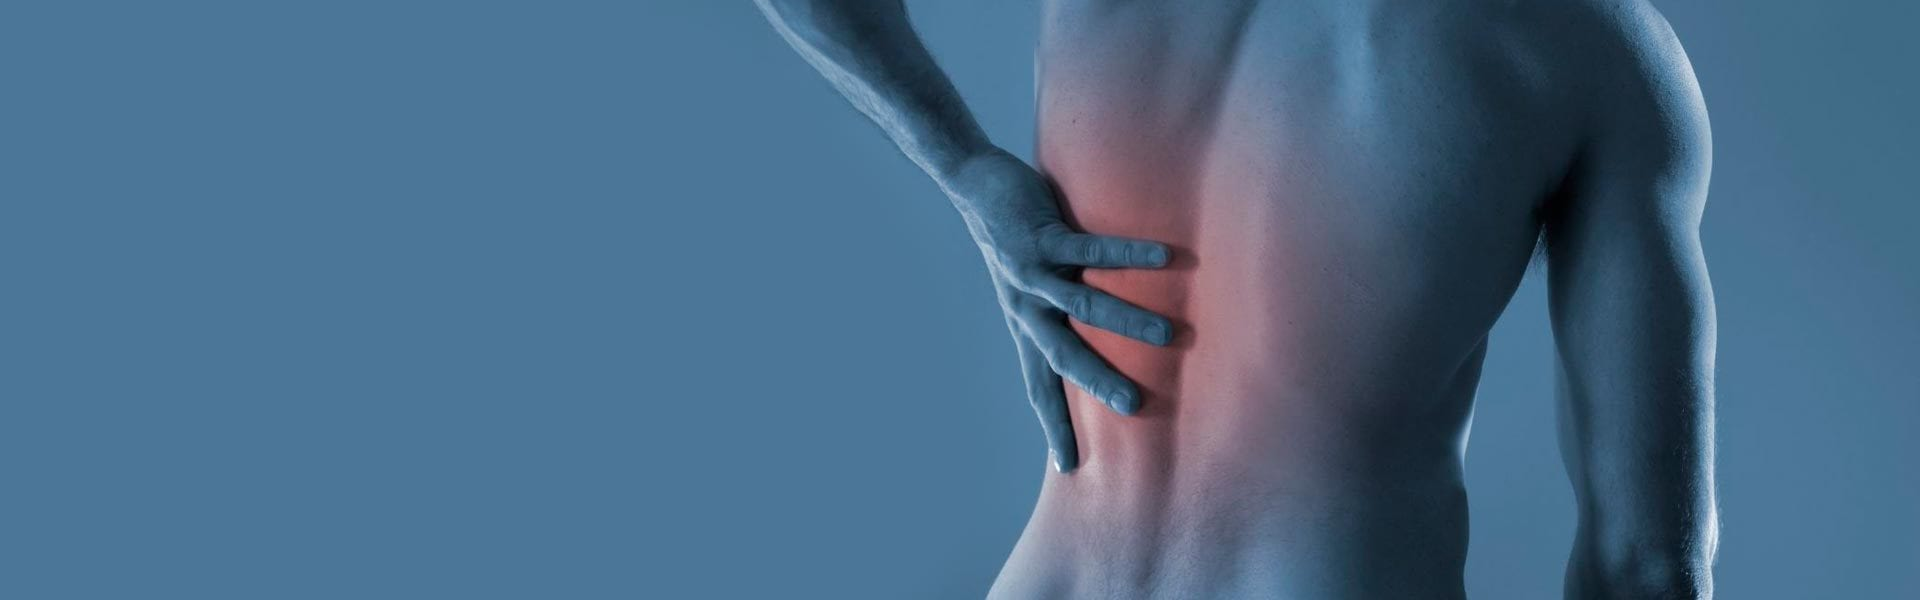 We provide services to those with back and neck pain